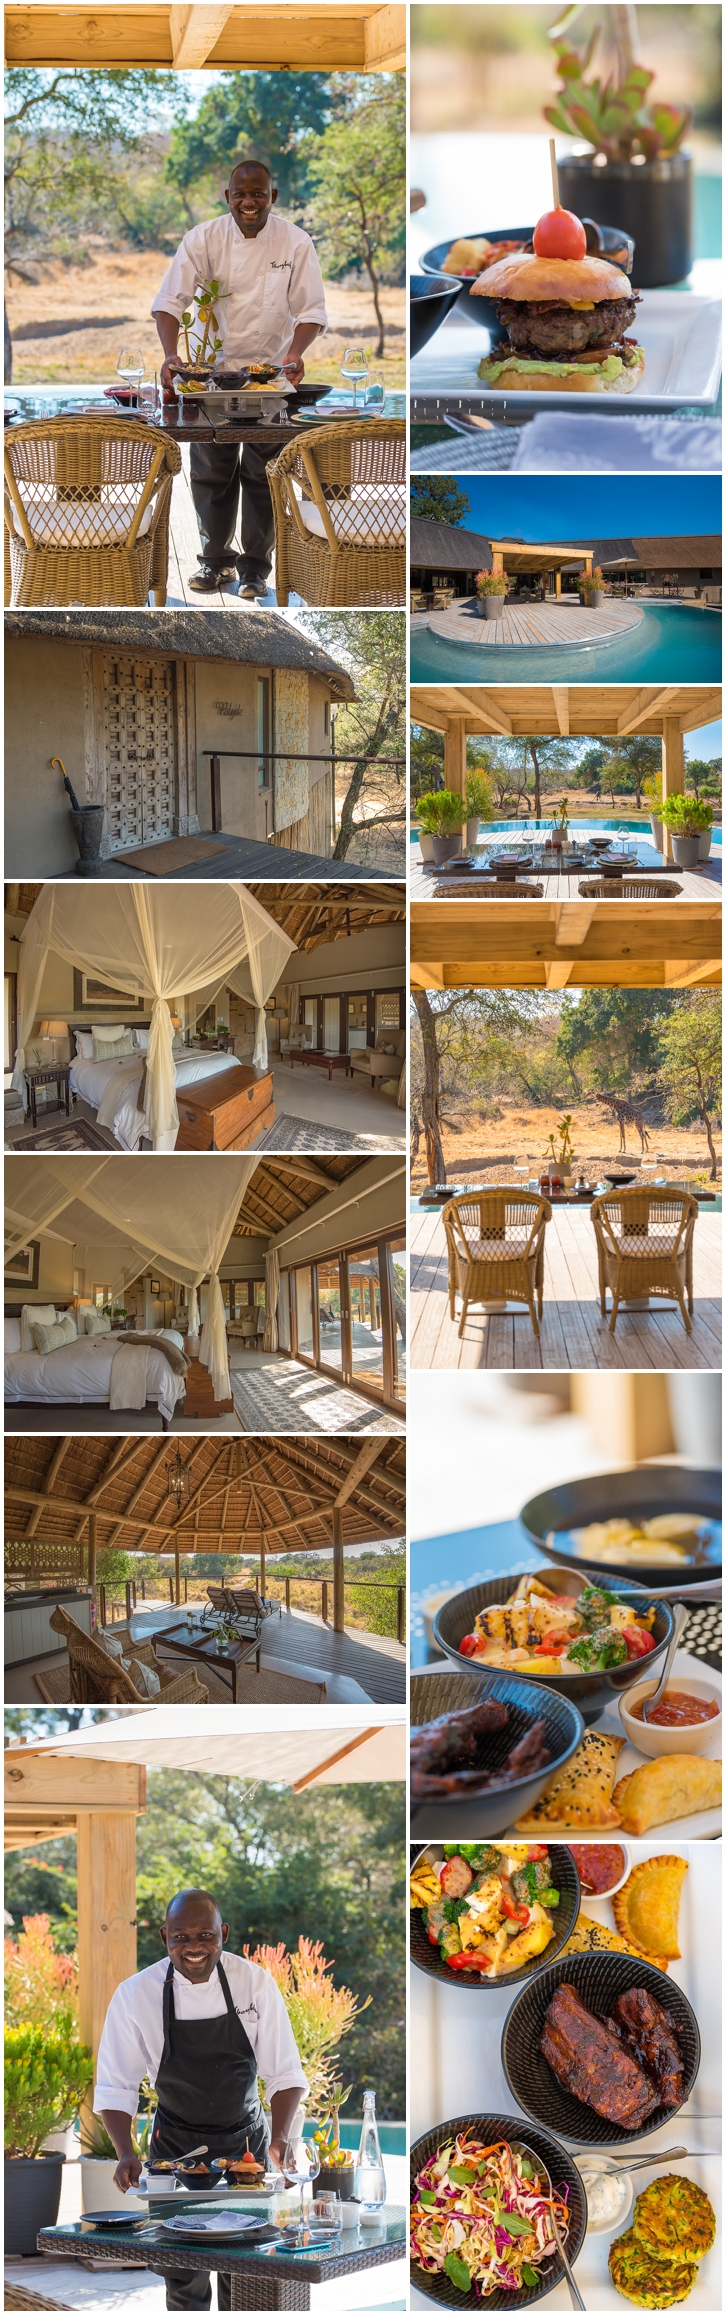 South african lodge photography